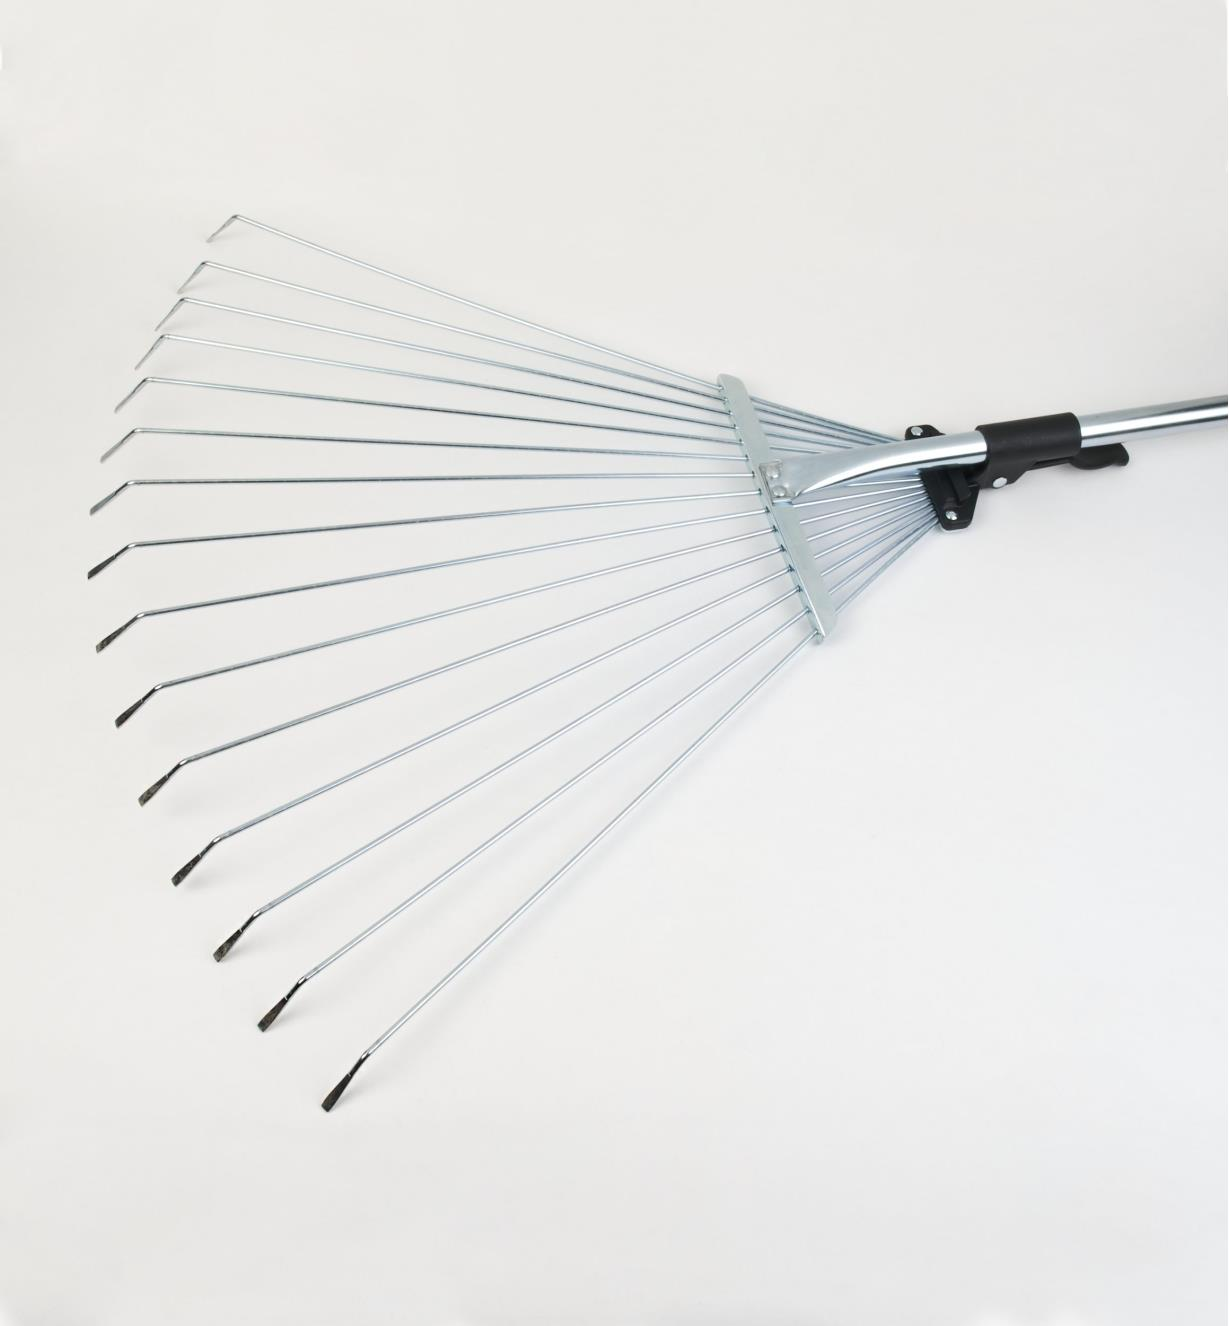 "Tines of long-handled rake shown spread to 22"" wide."